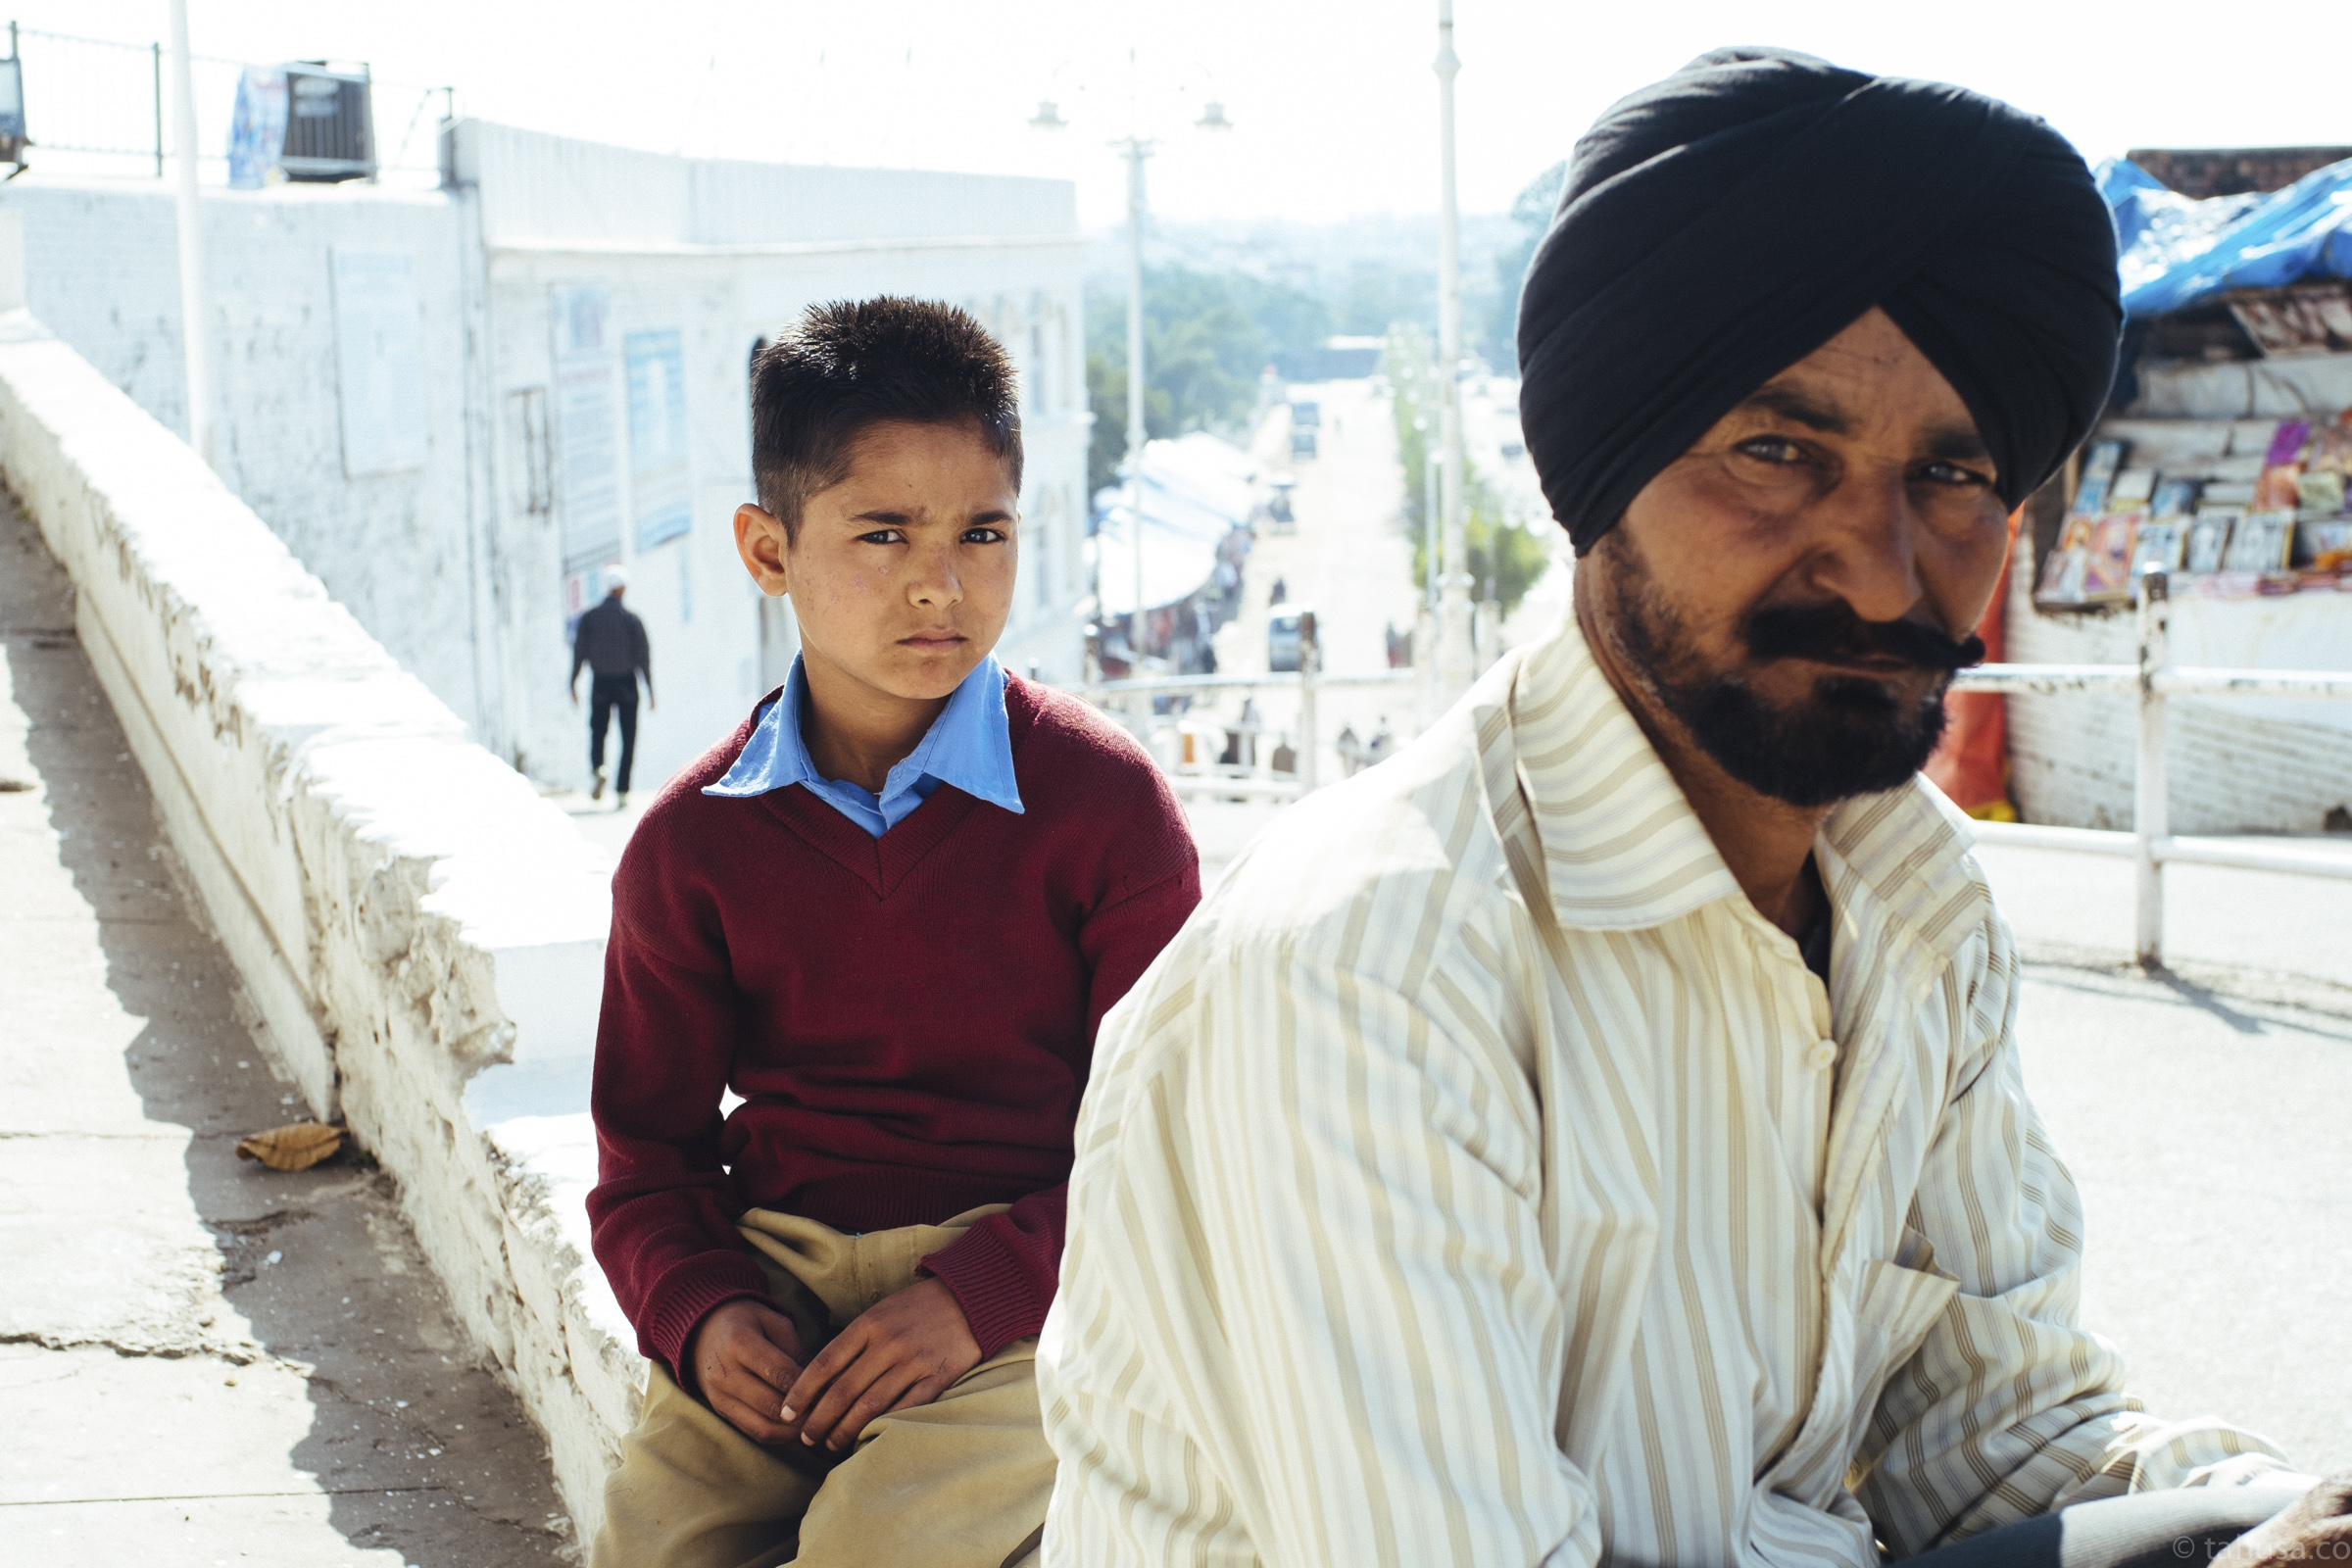 father-and-son-posing-outside-temple-in-Una-India-fuji-fujifilm-xe1-35mm-portrait-city-scanner-cities-snap